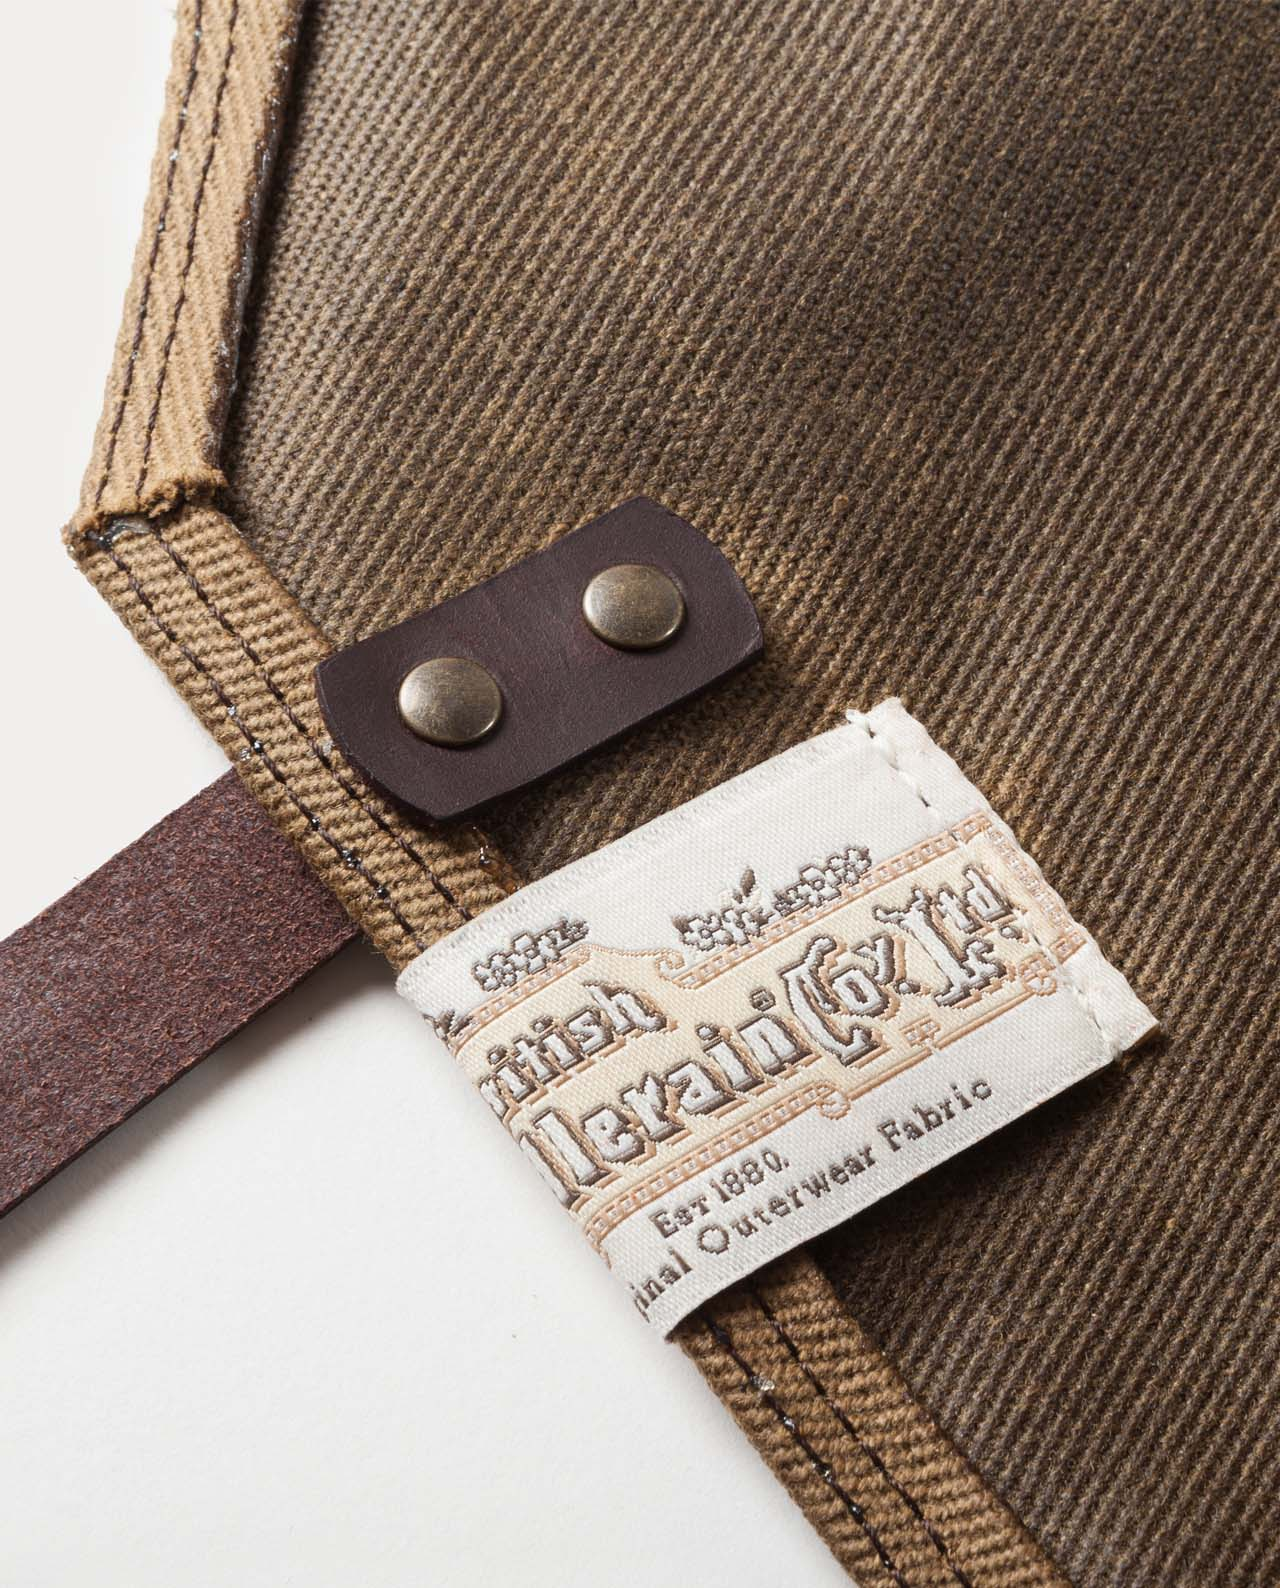 Delantal de trabajo de 18oz. Work apron made with British Millerain waxed canvas and Premium Vegetable tanned leather.